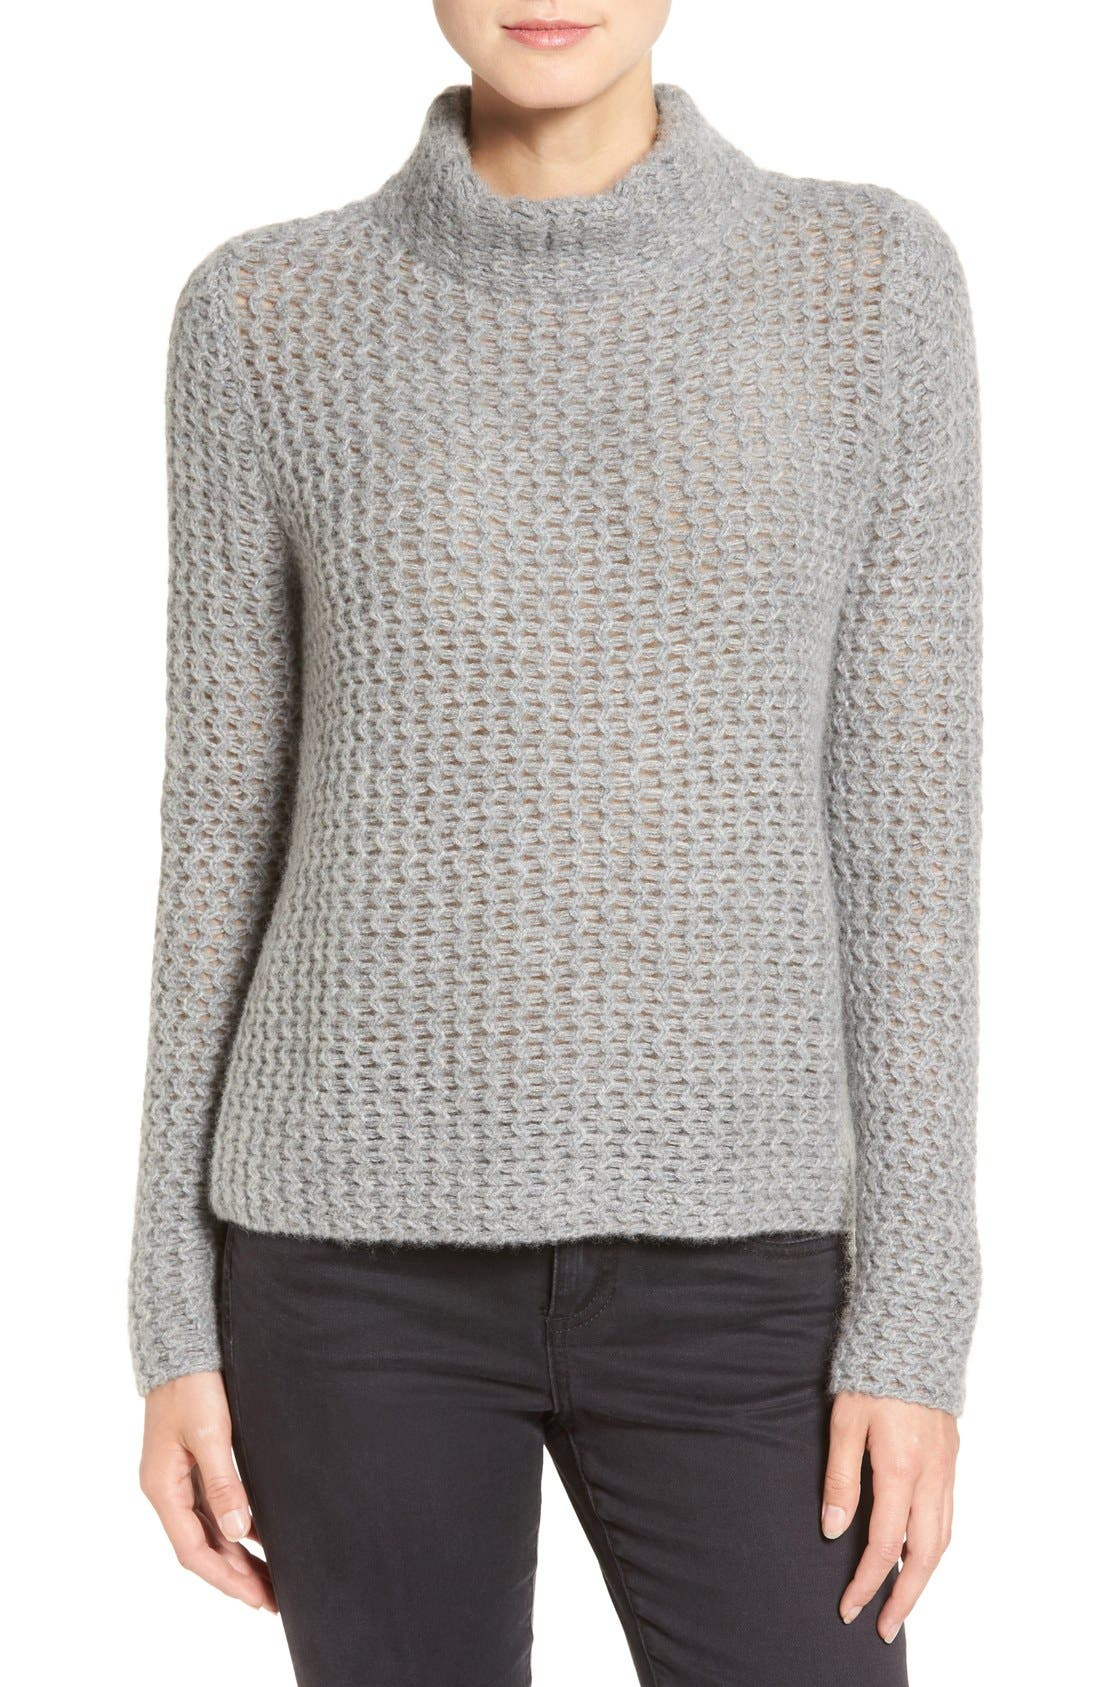 Main Image - Halogen® Stitch Detail Cashmere Mock Neck Sweater (Regular & Petite)